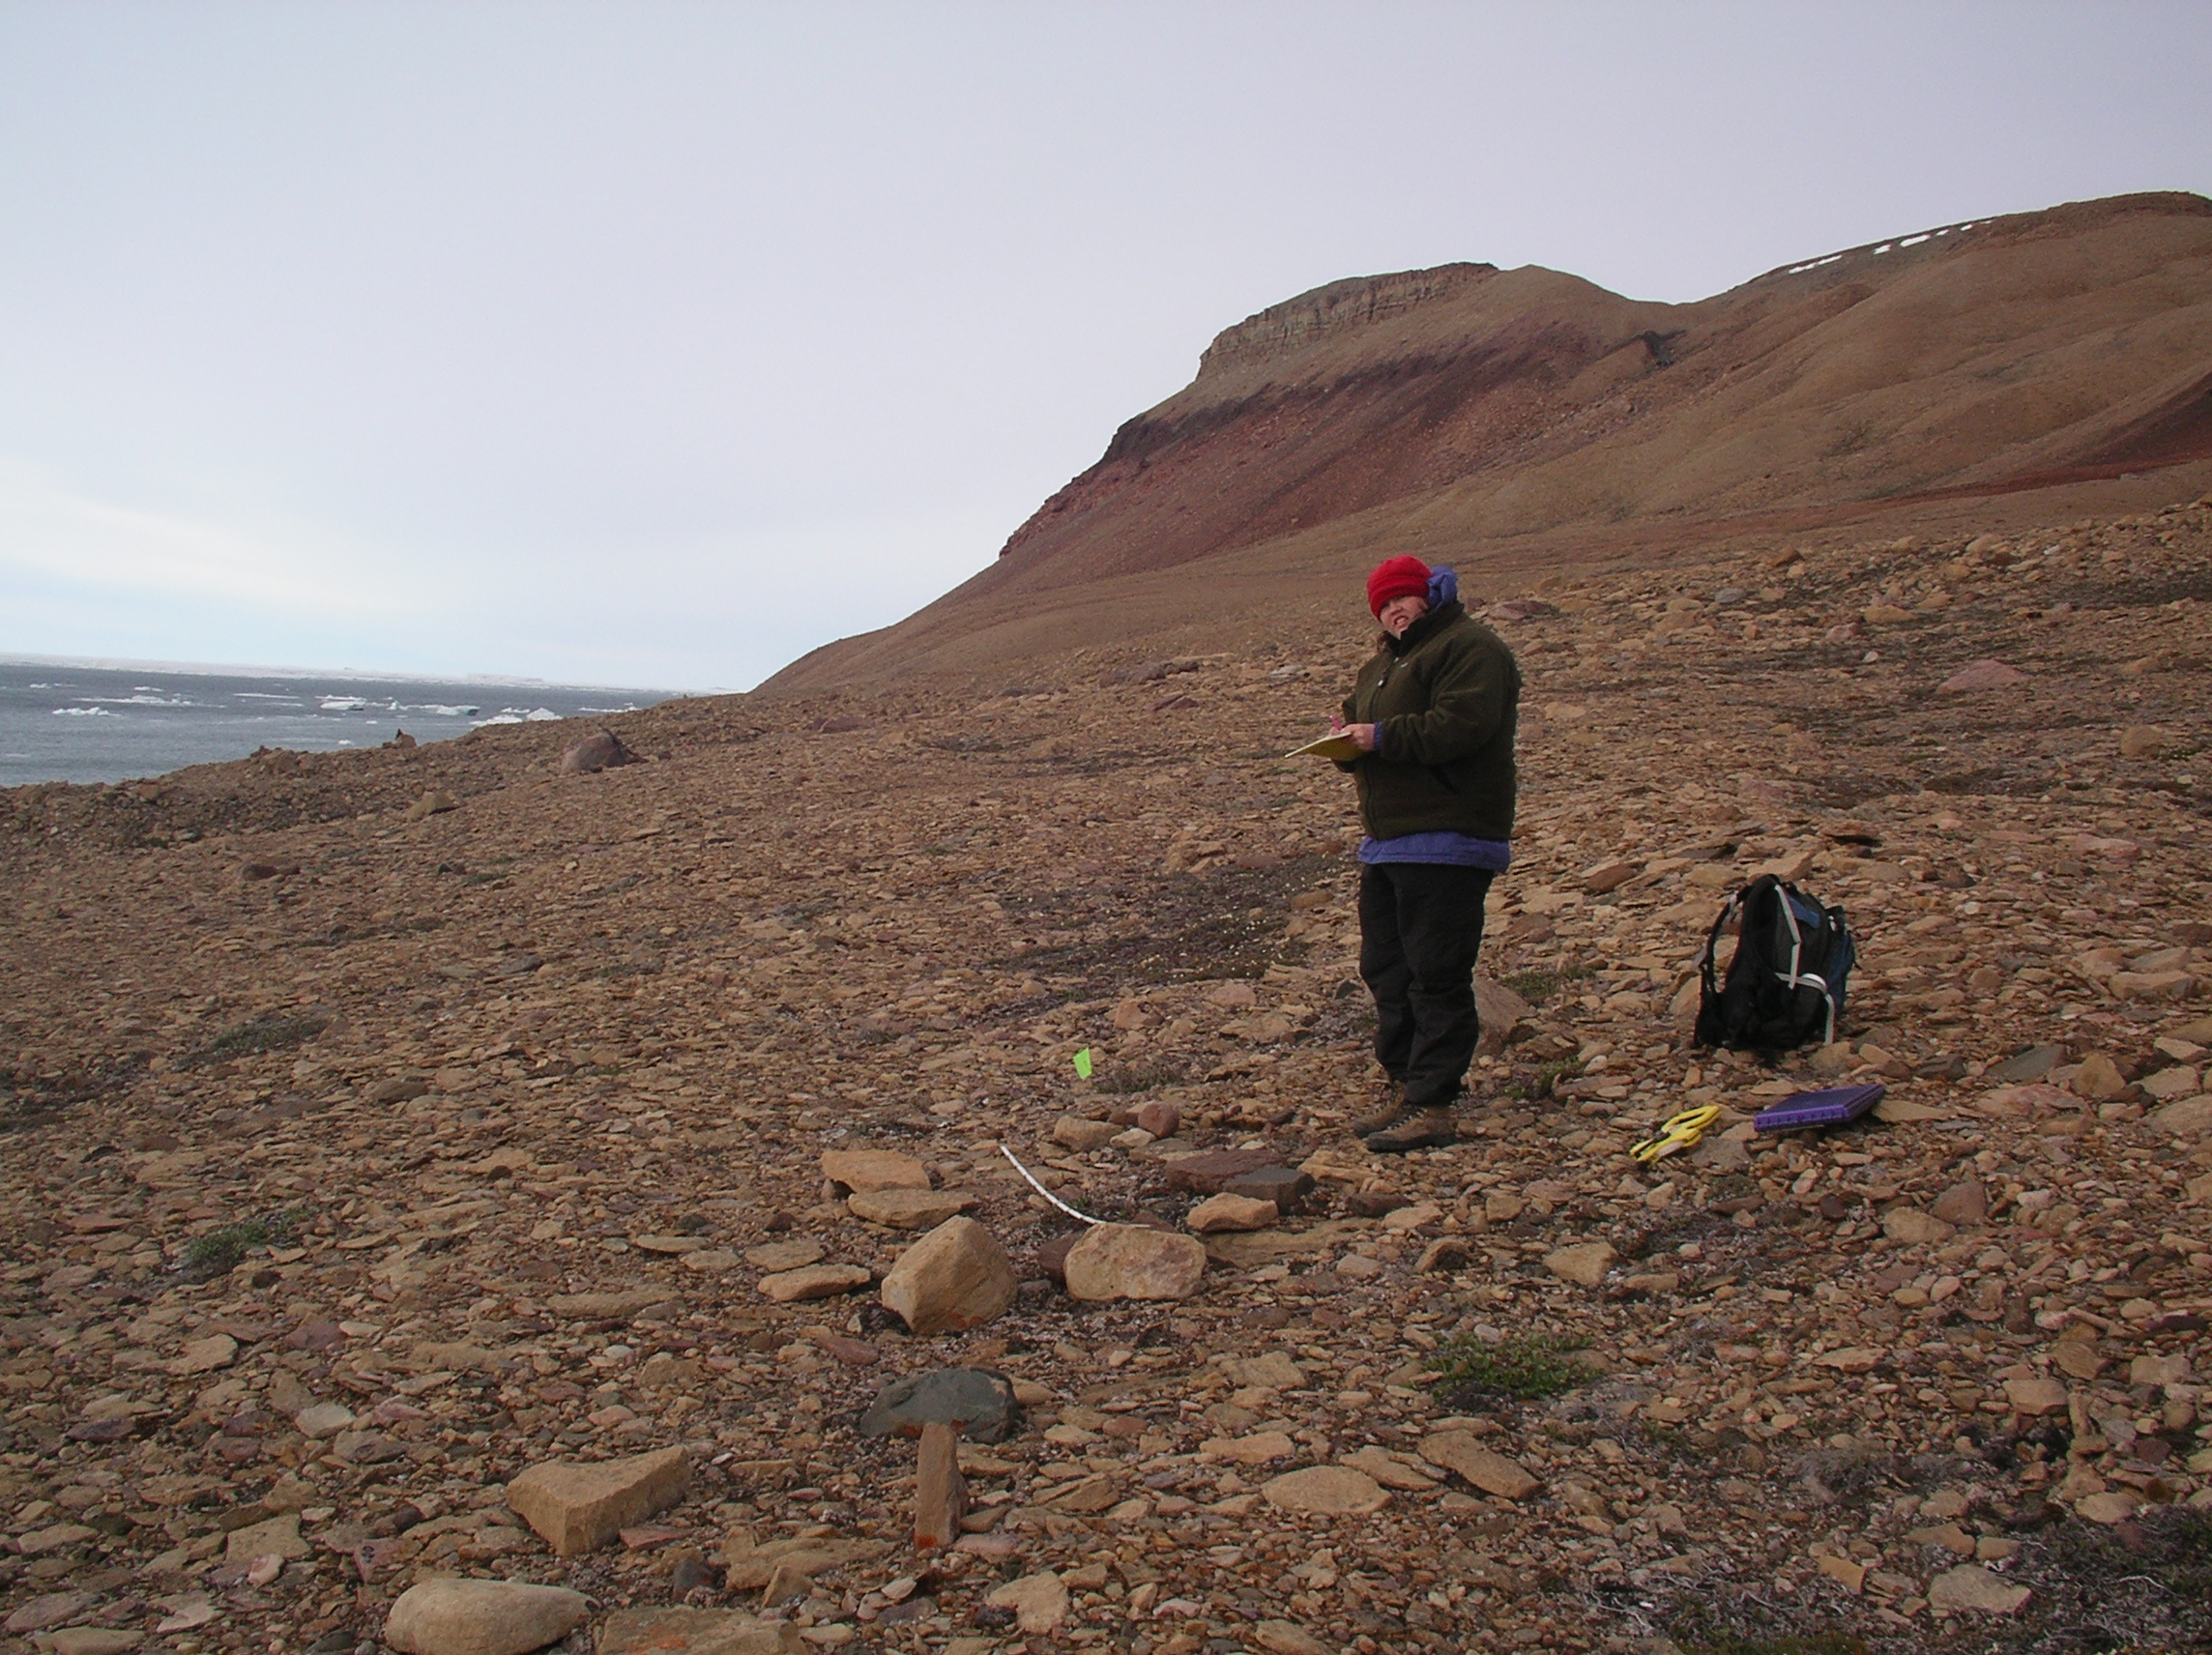 Photo: UC Davis archaeologist Christyann Darwent standing with clipboard in a baren, rocky landscape